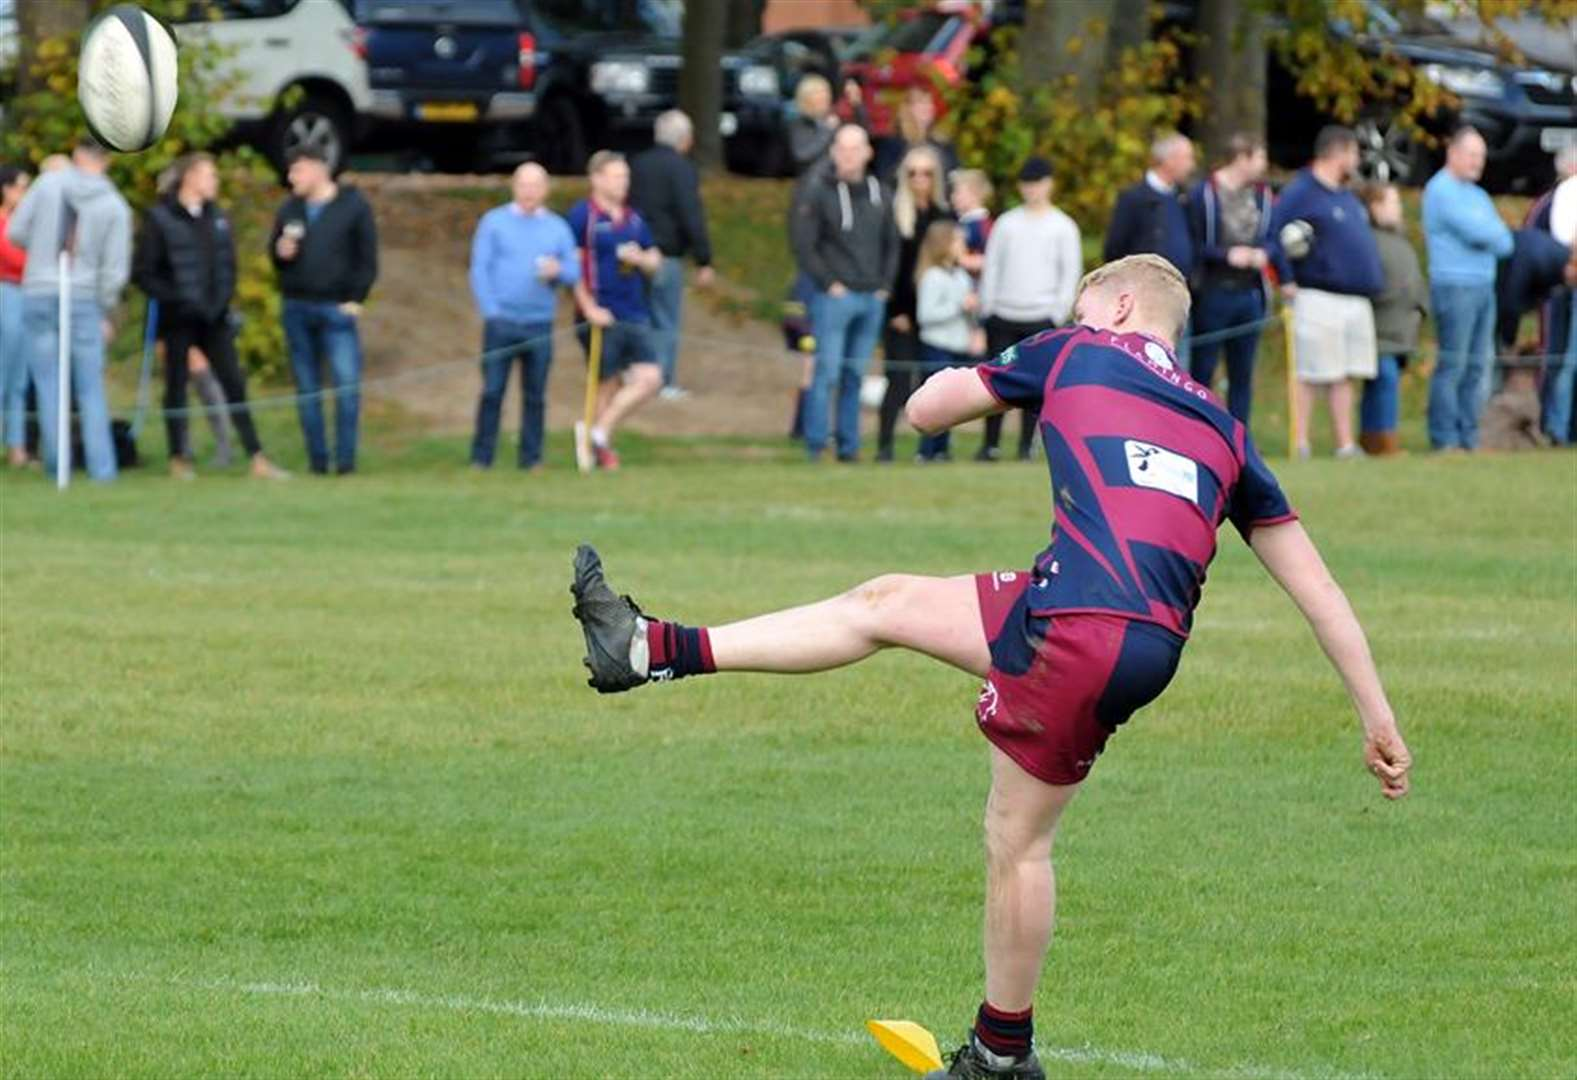 RUGBY UNION: Spirited effort by Spalding